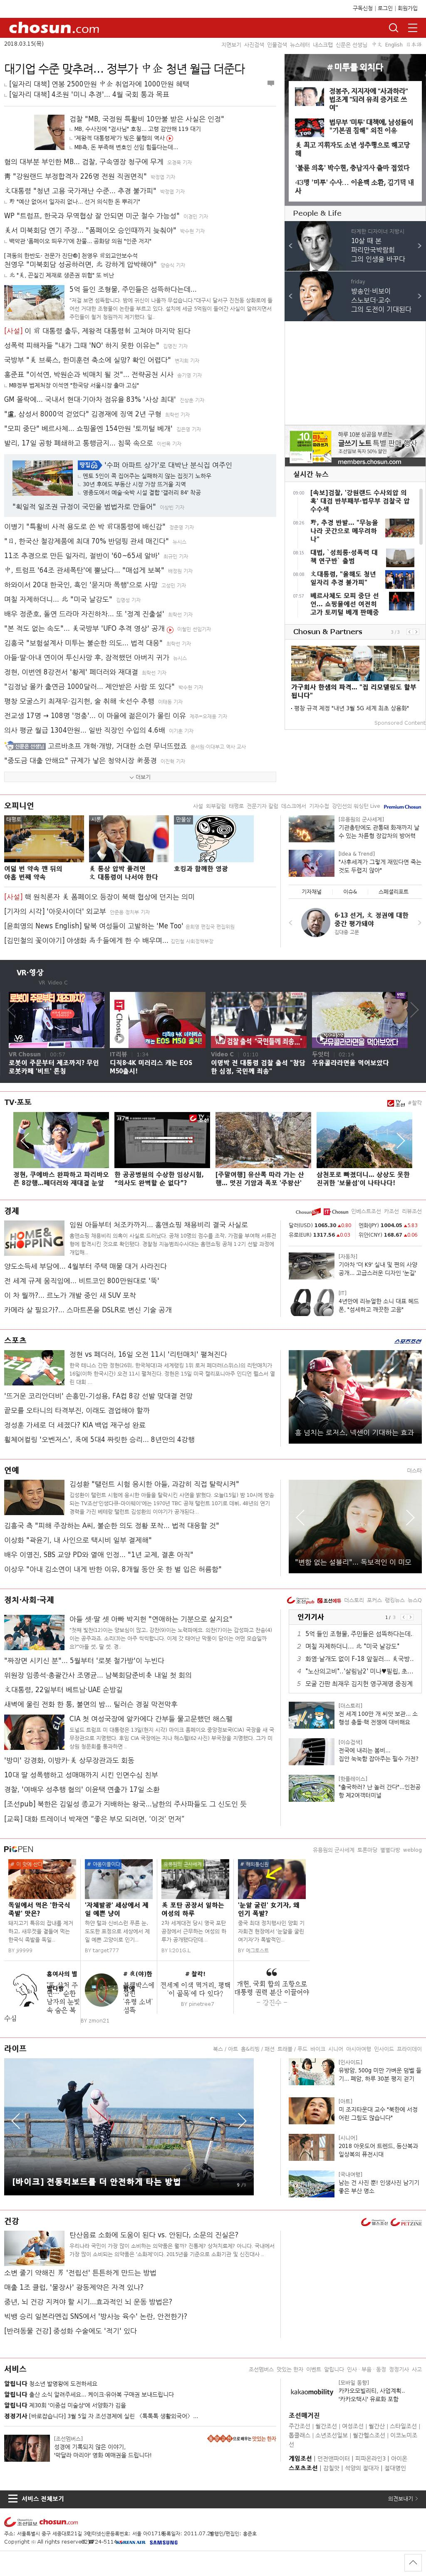 chosun.com at Thursday March 15, 2018, 9:01 a.m. UTC